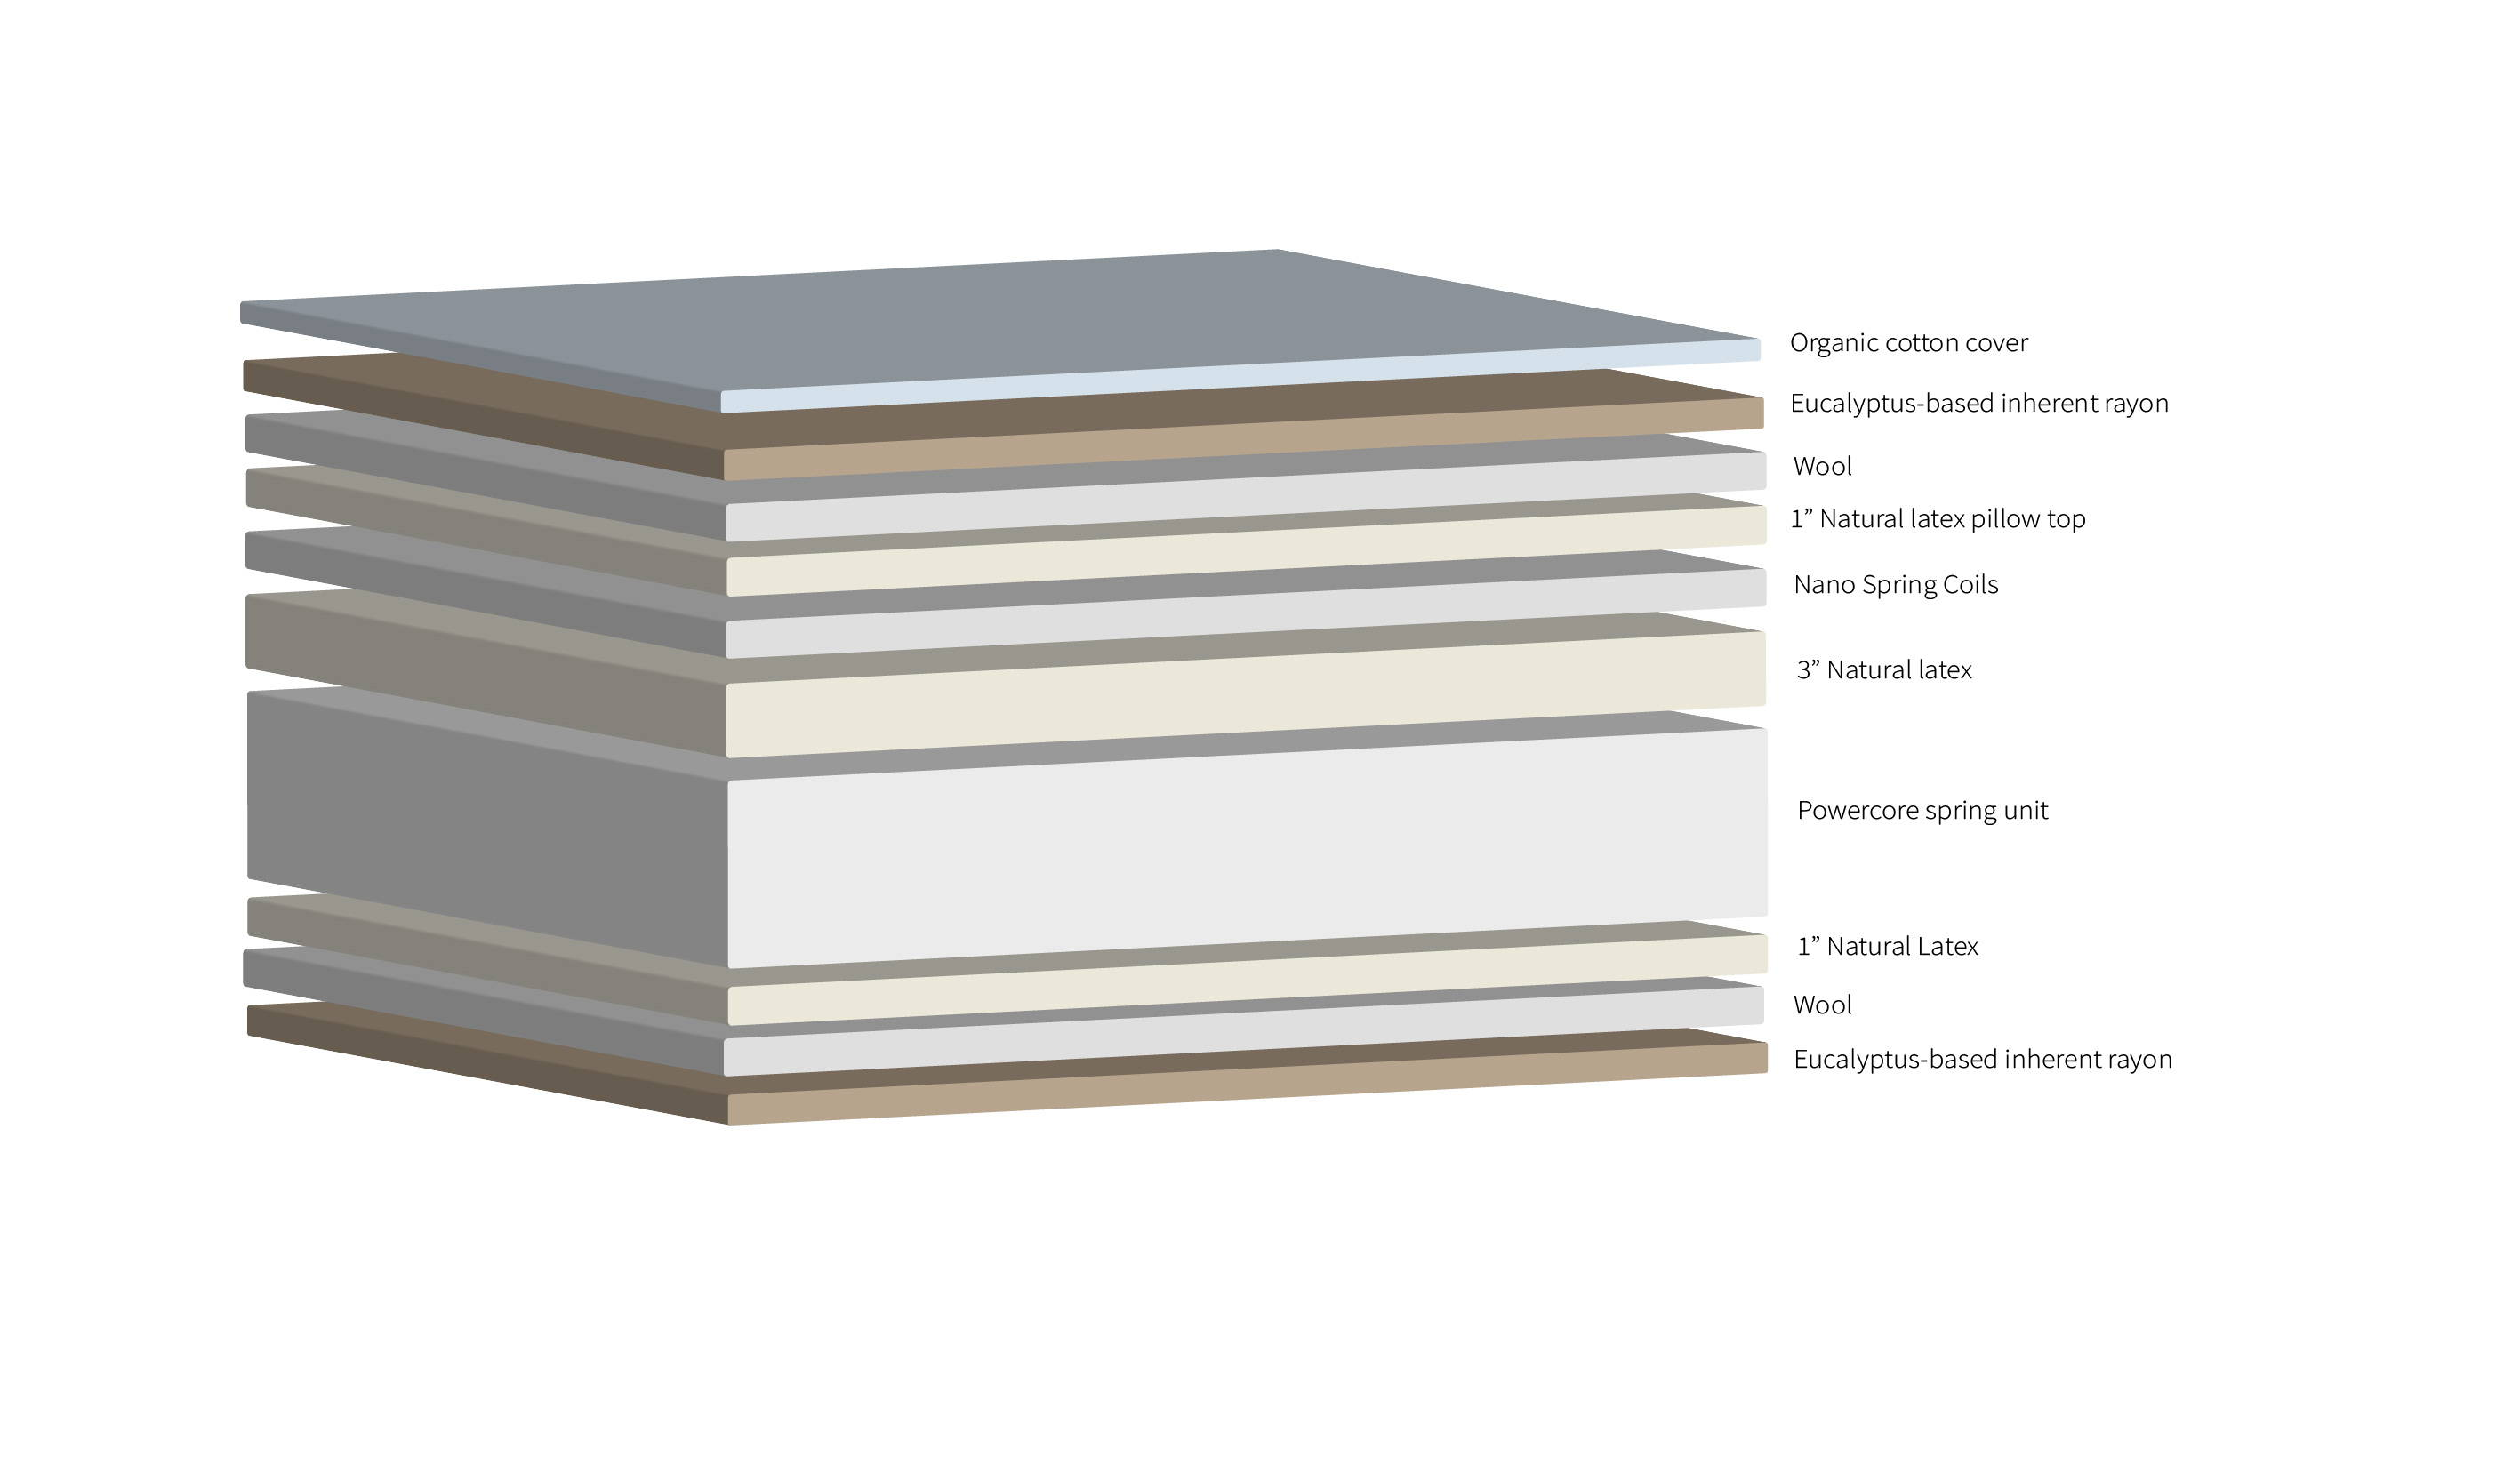 Layers of materials in Real Bed Pillow Top Mattress. Illustration